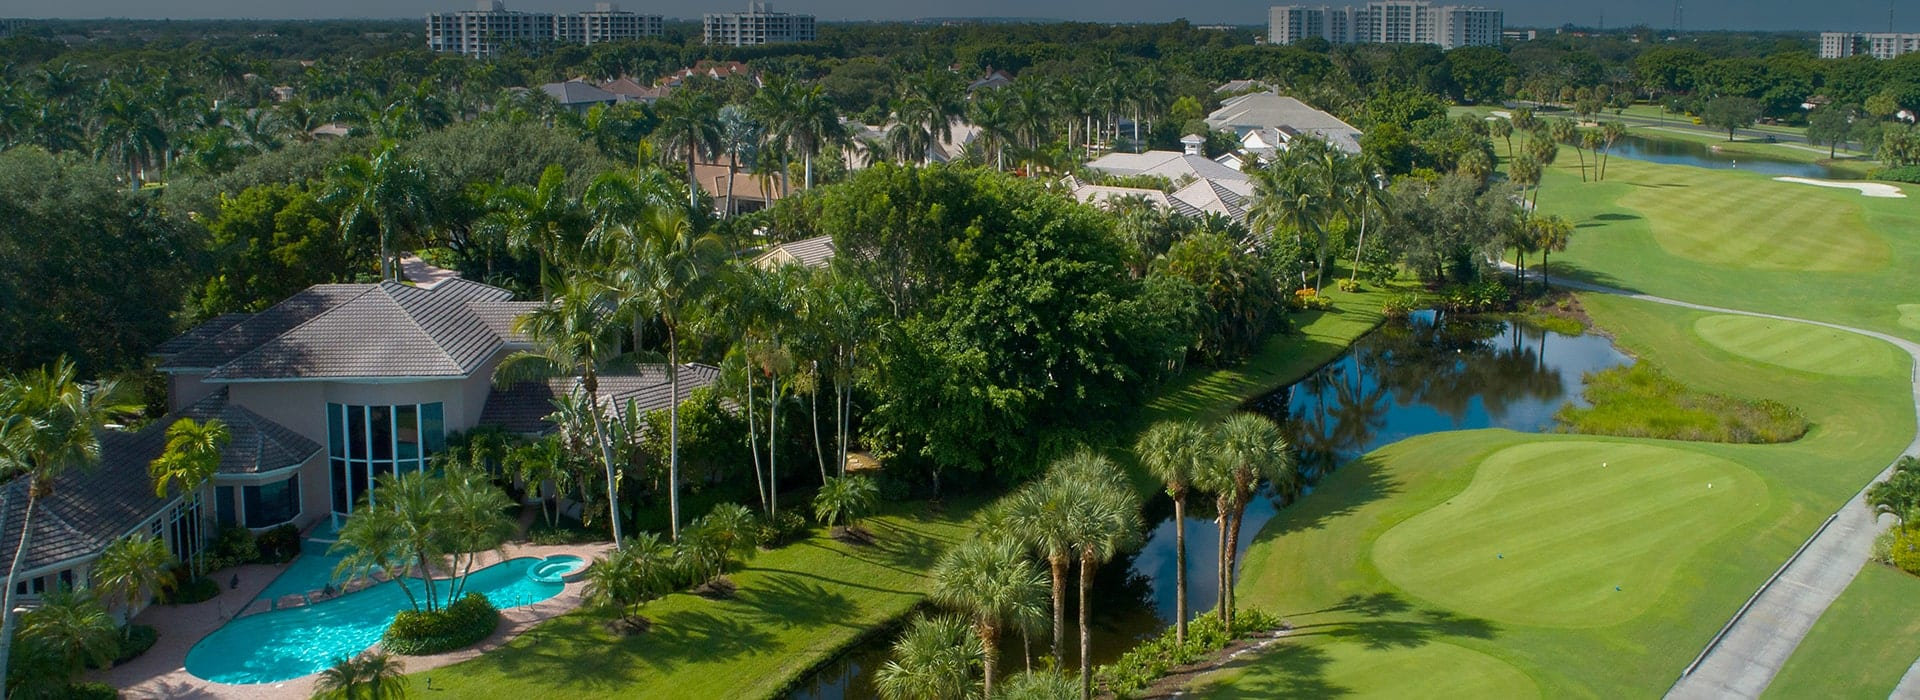 Oakbrook custom-build homes in Boca West with lush landscaping and golf course views